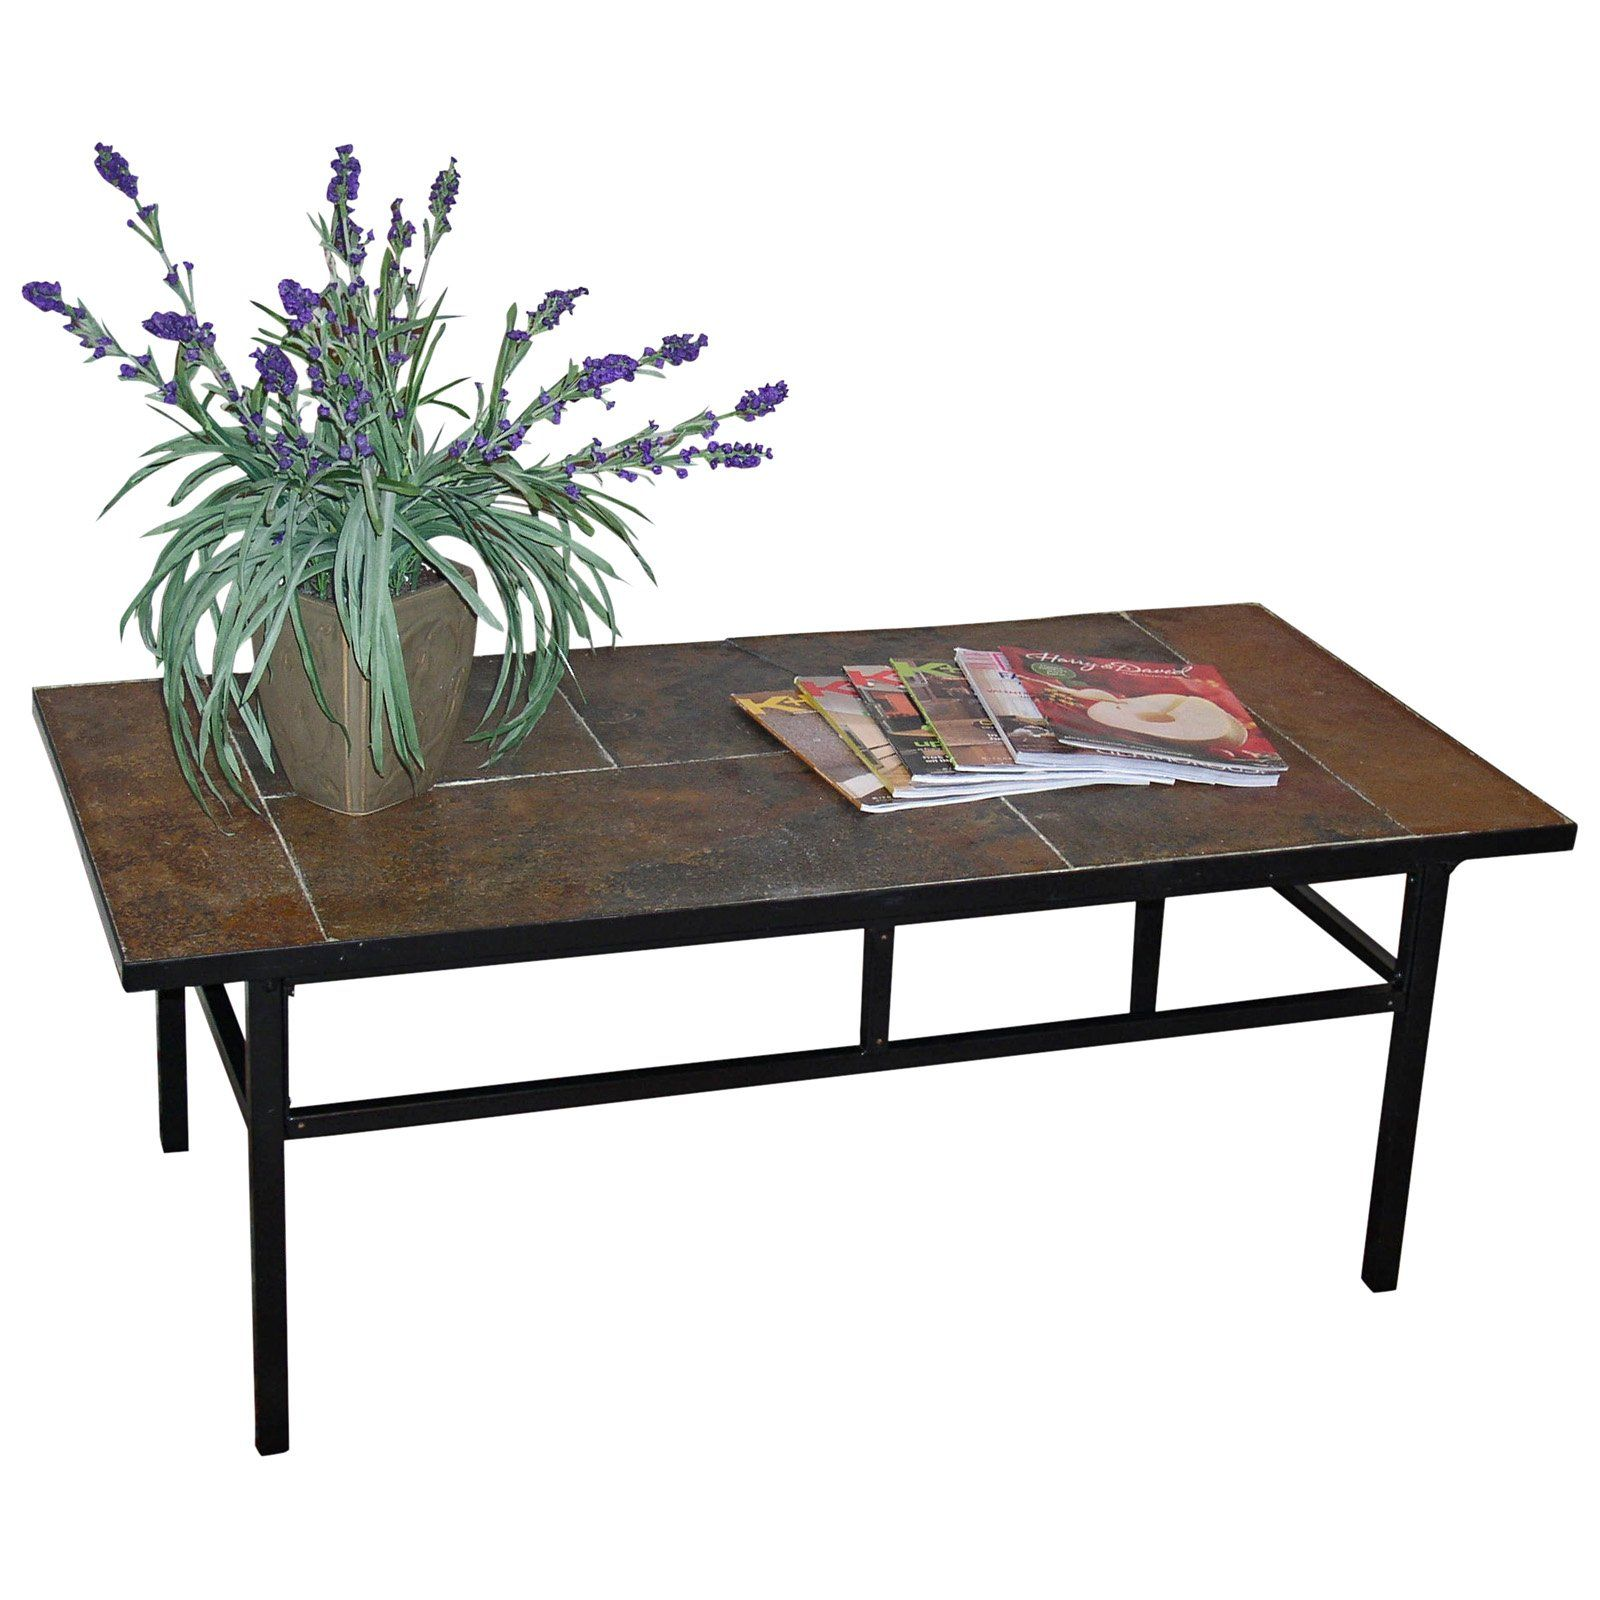 Have To Have It Slate Coffee Table 167 98 Coffee Table Slate Coffee Table Table [ 1600 x 1600 Pixel ]